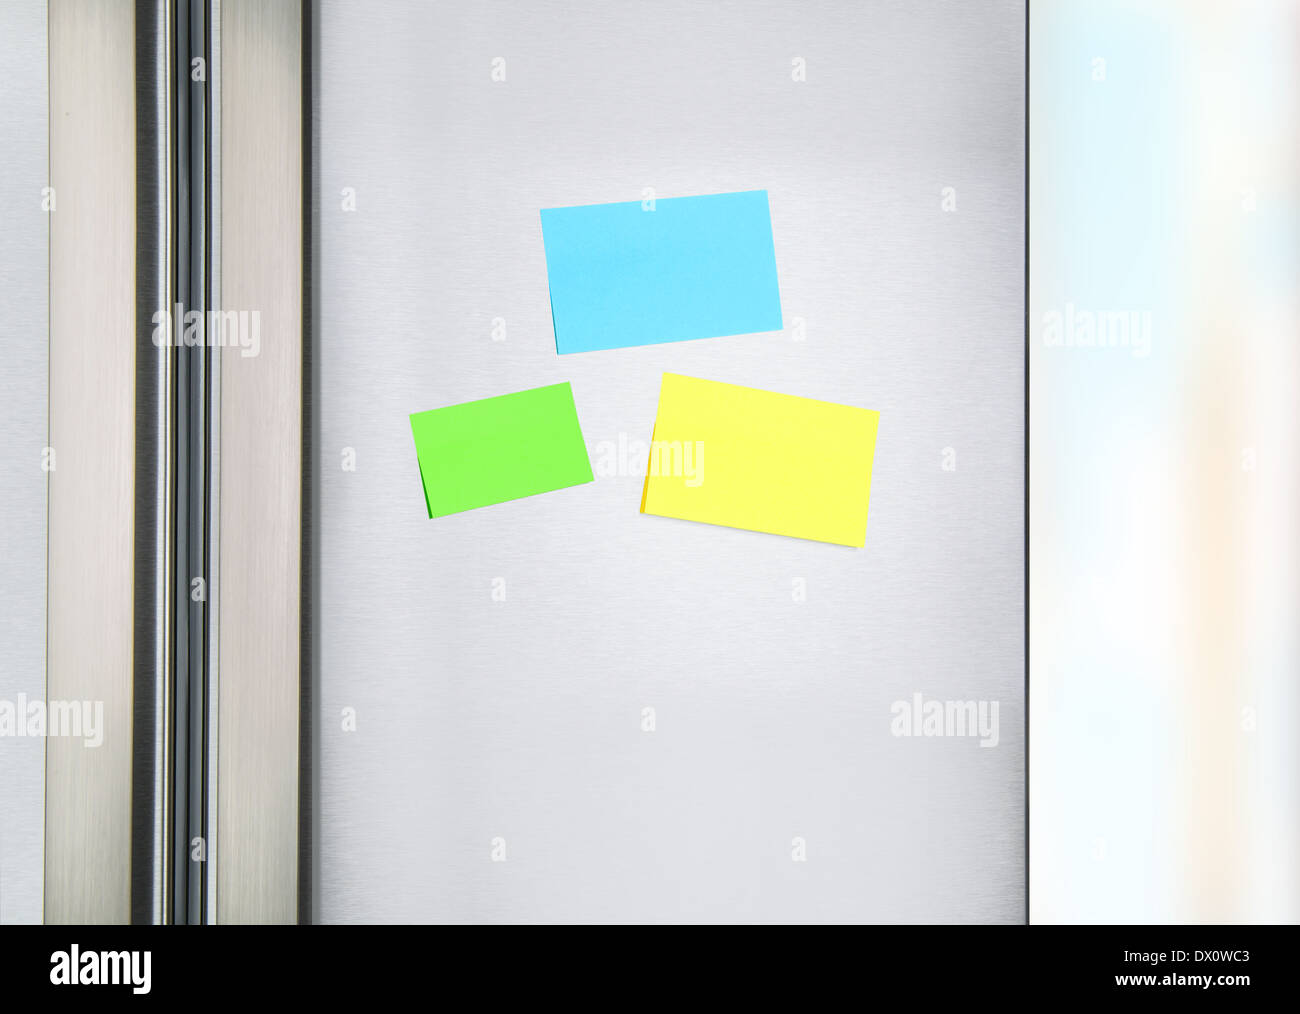 Sticky notes on the fridge three colorful paper on the door of refrigerator for message little reminder sheets  sc 1 st  Alamy & Sticky notes on the fridge three colorful paper on the door of ...